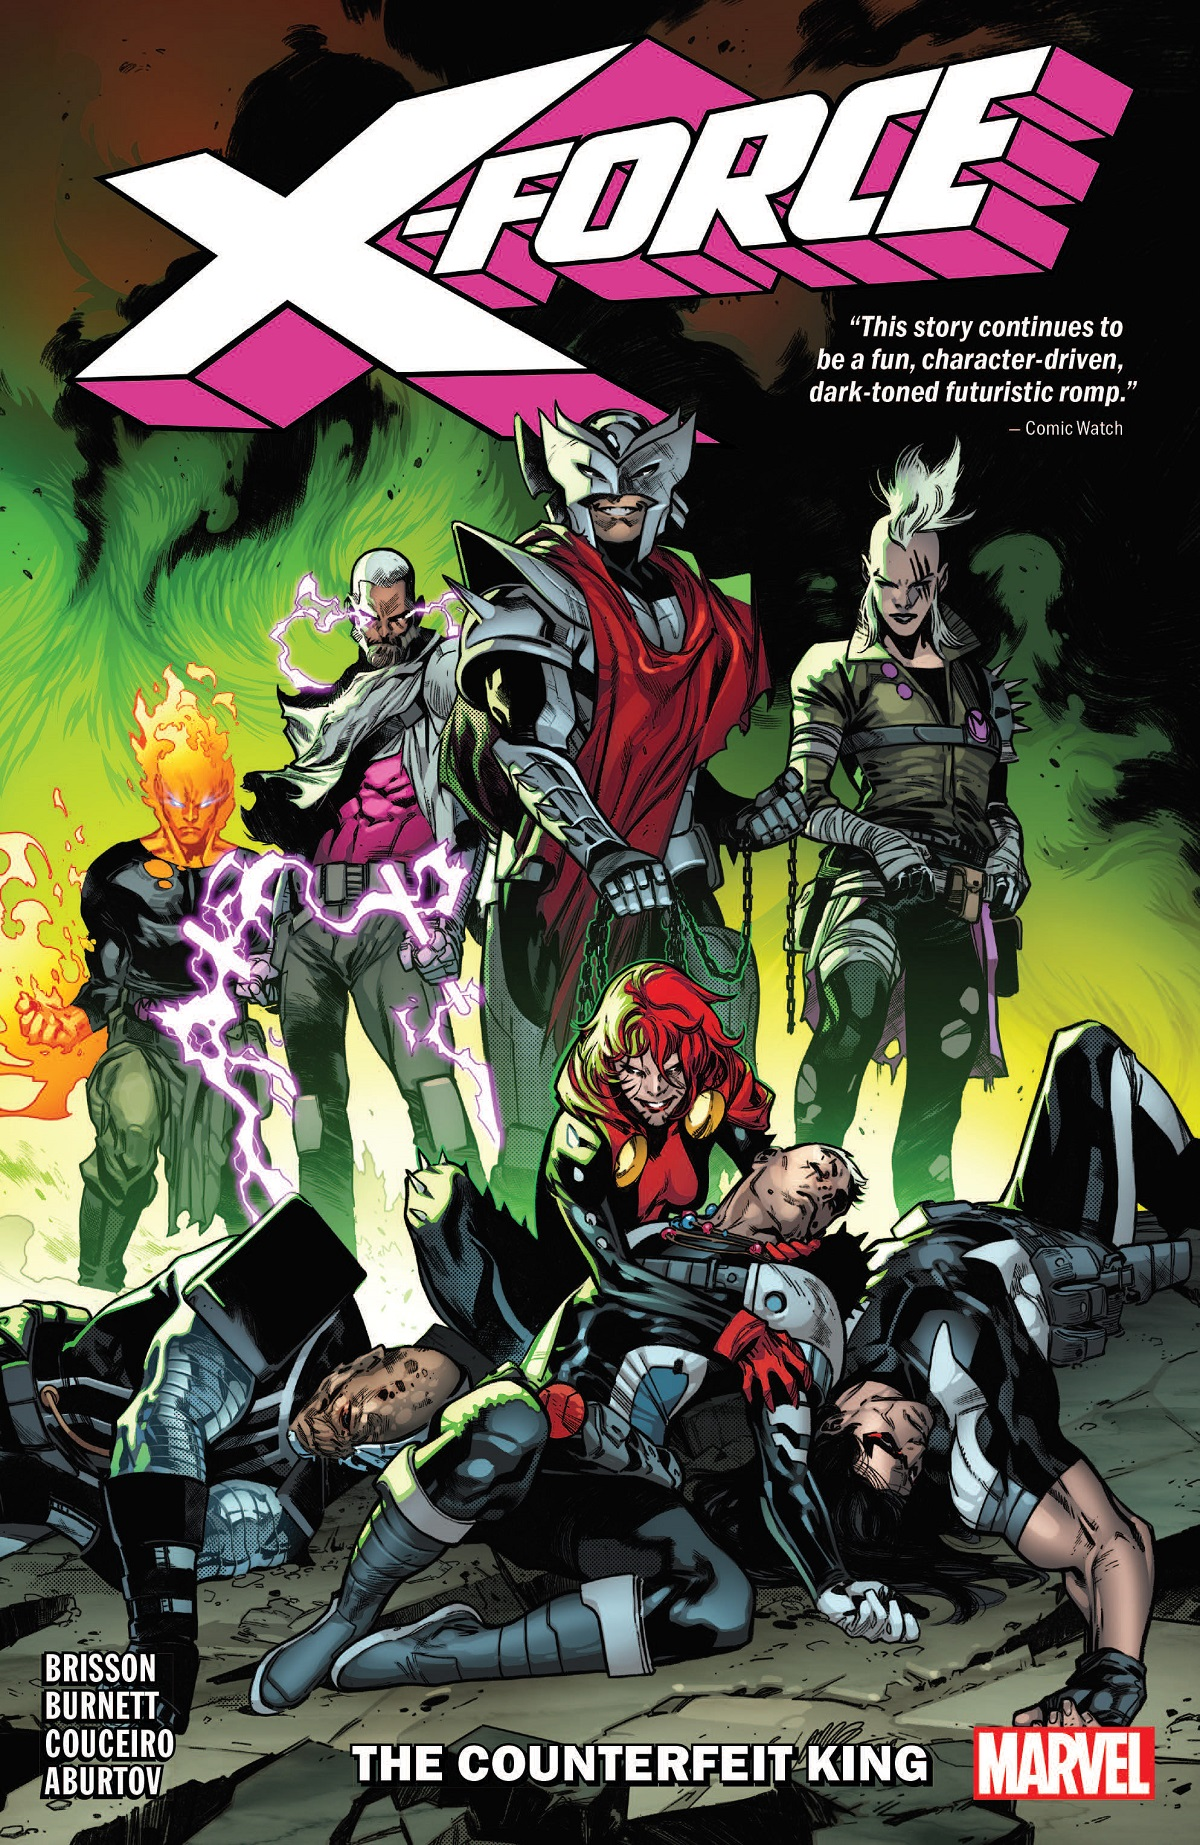 X-Force Vol. 2: The Counterfeit King (Trade Paperback)